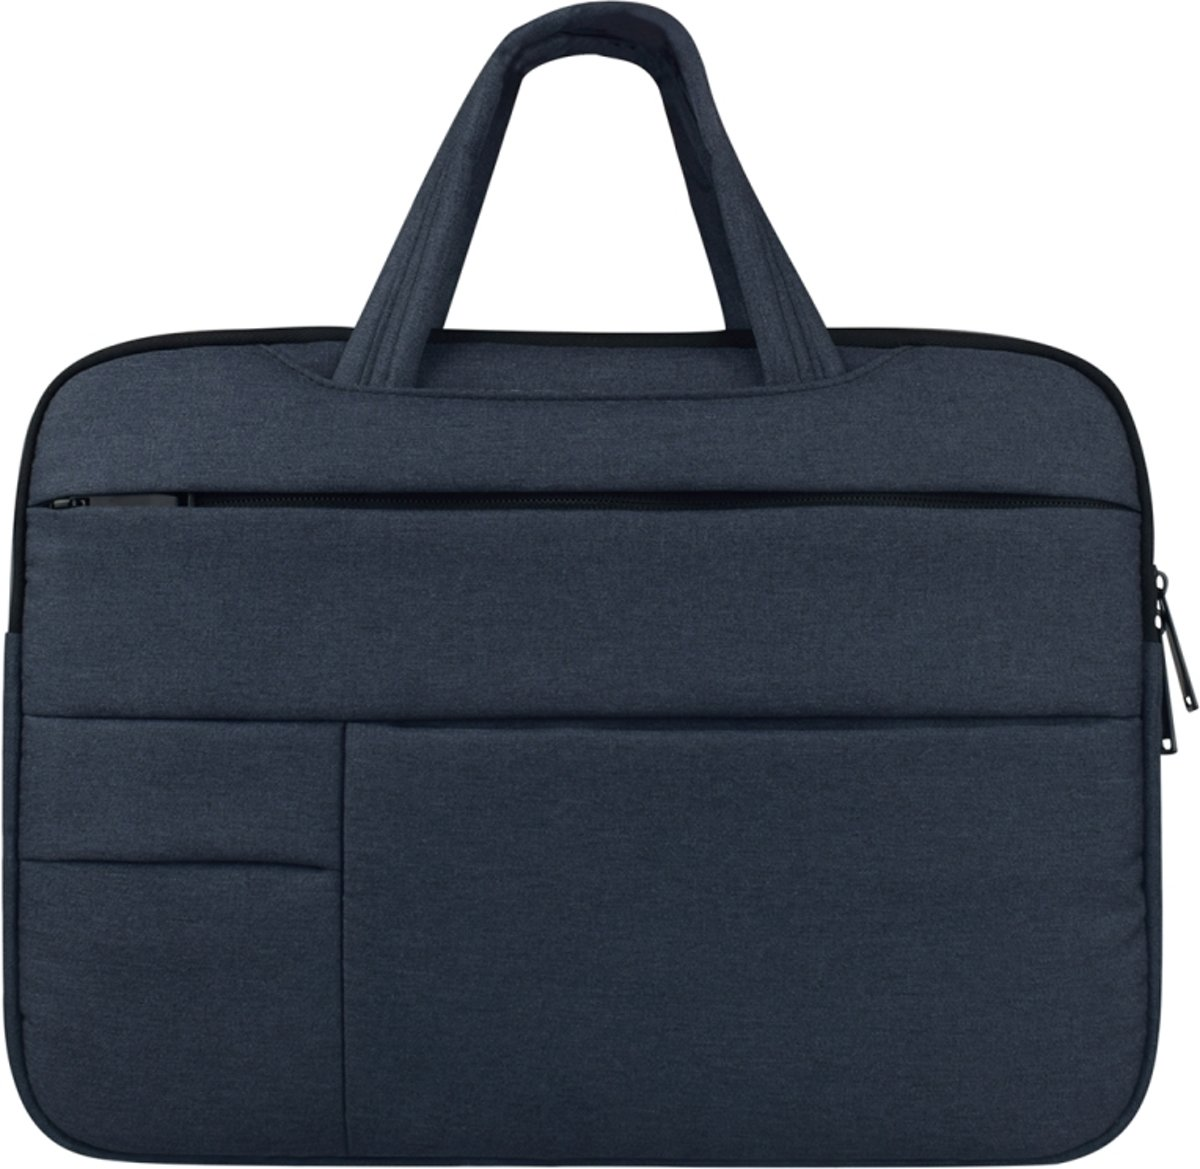 Let op type!! Universele 15.6 inch Business stijl Laptoptas met Oxford stof voor MacBook  Samsung  Lenovo  Sony  Dell  Chuwi  Asus  HP (marine blauw)